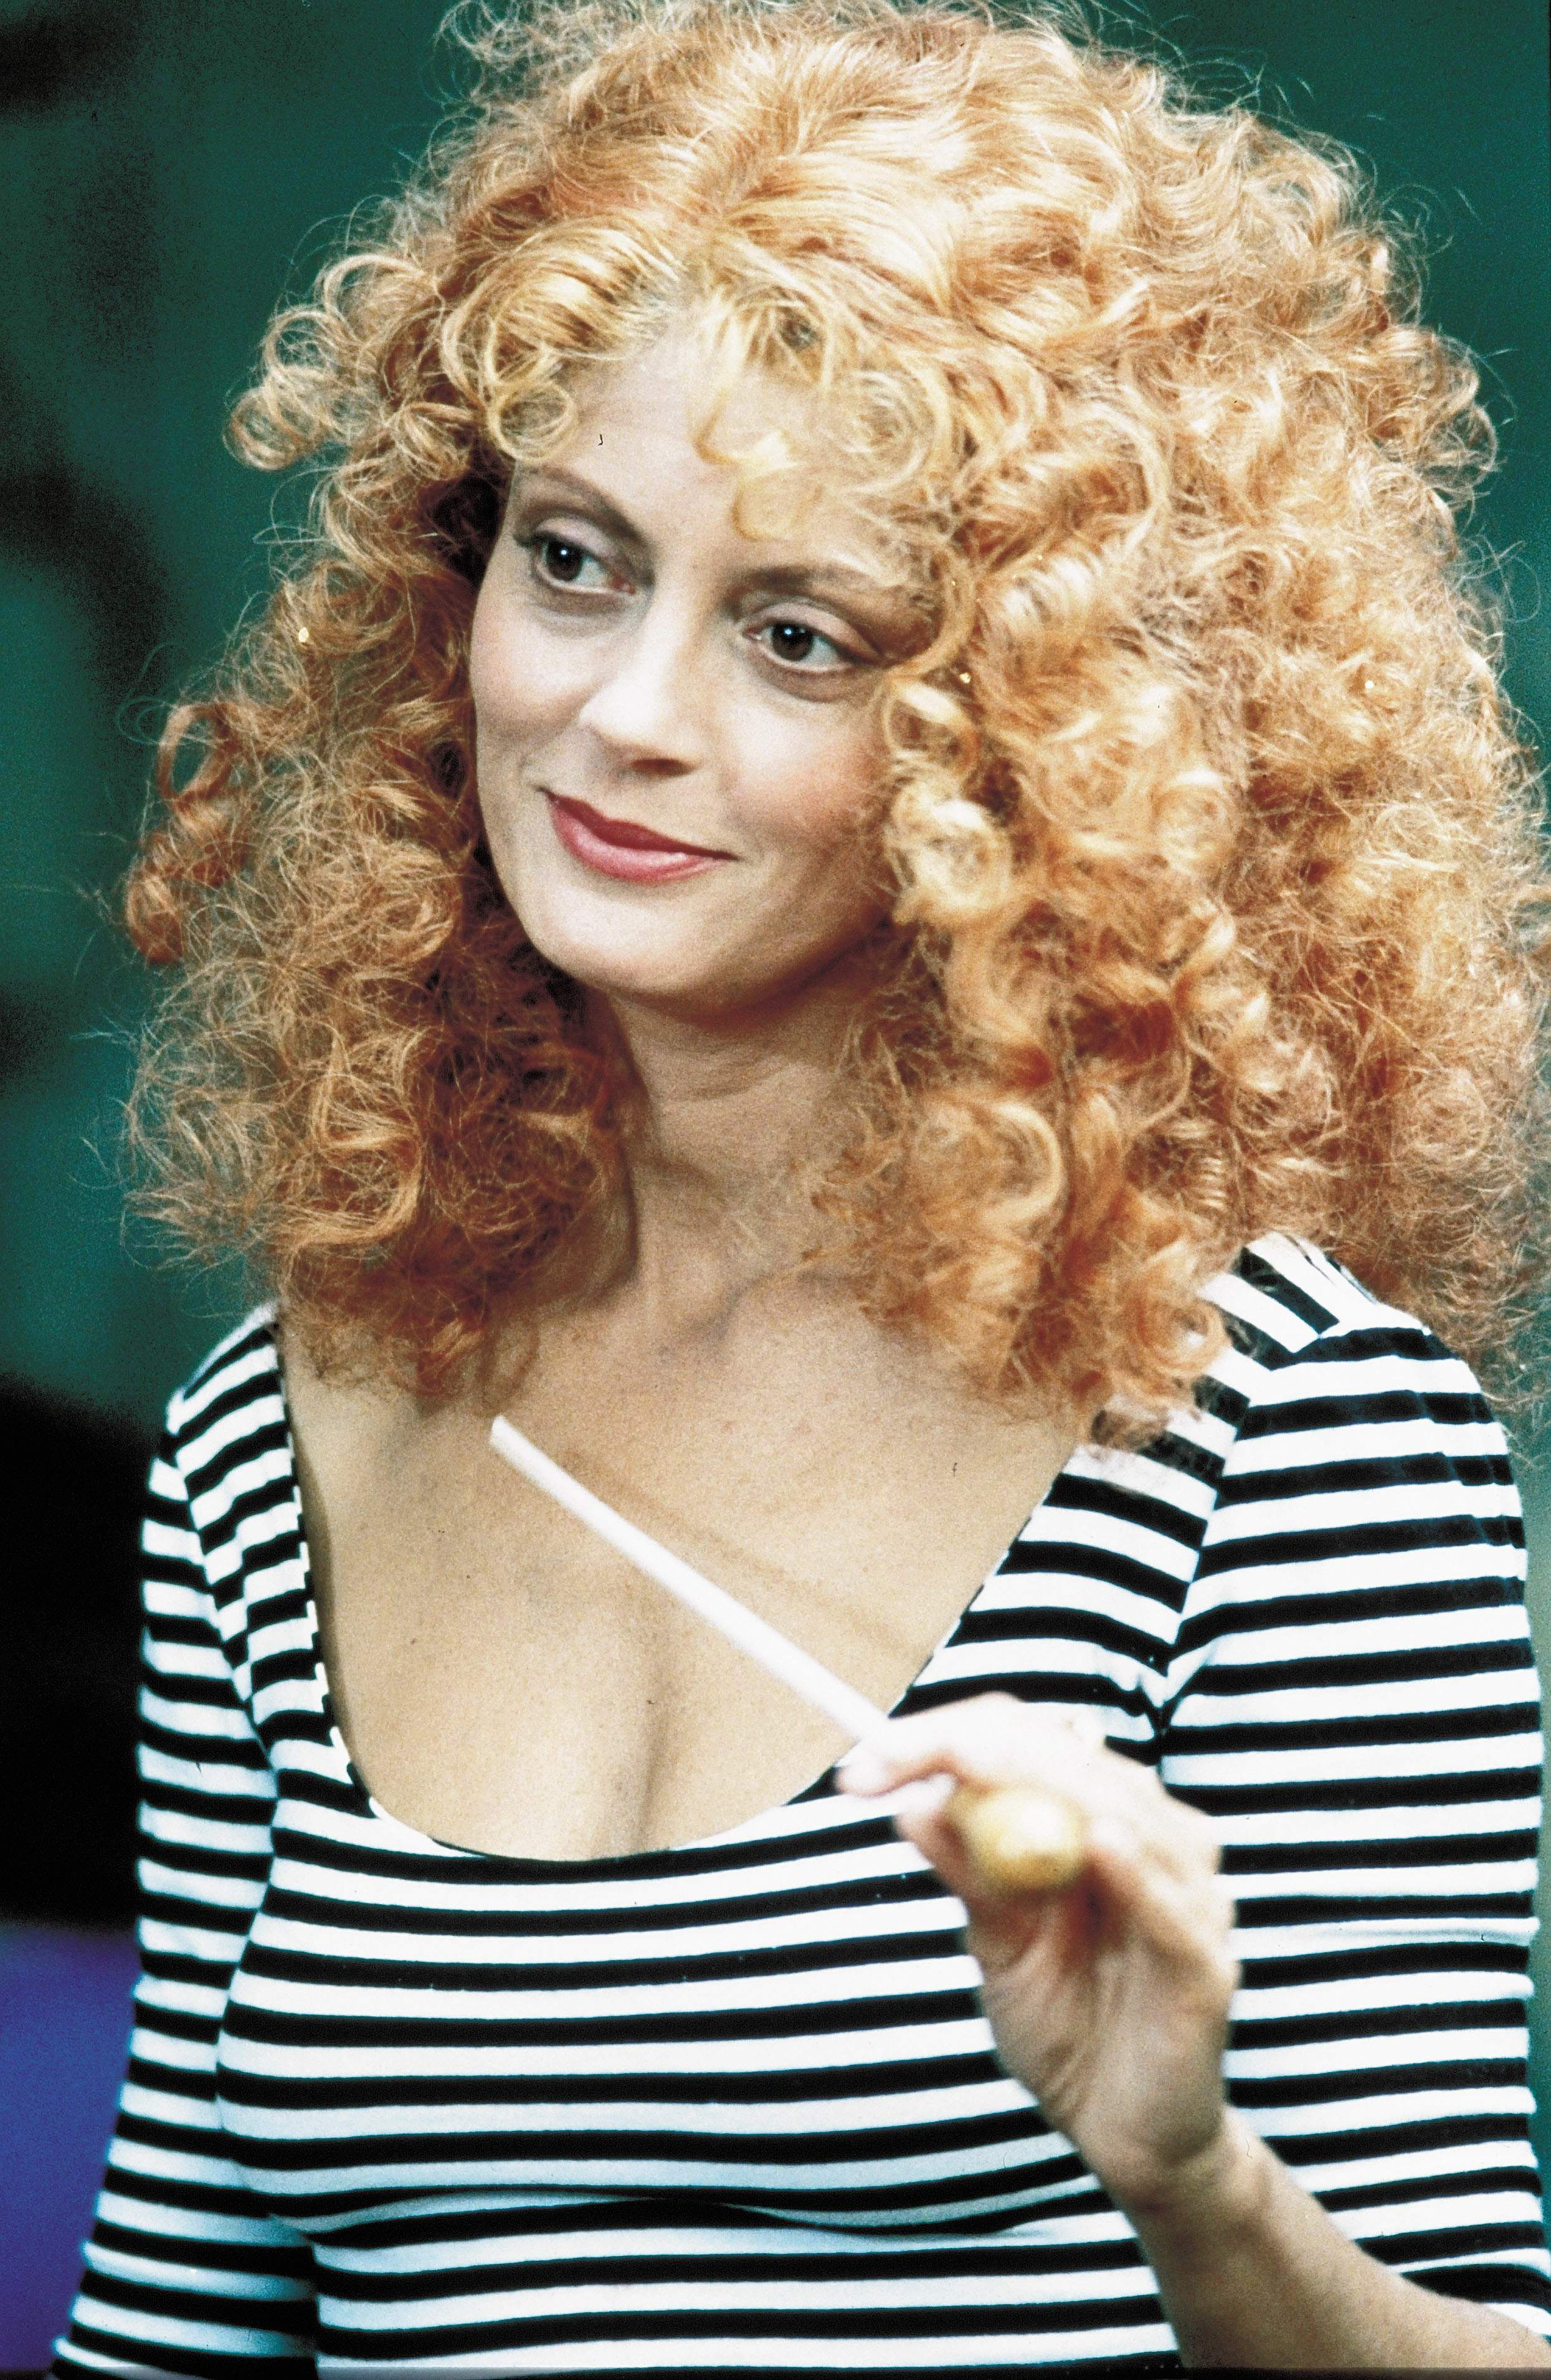 The Witches of Eastwick - Susan Sarandon Photo (32575631 ...